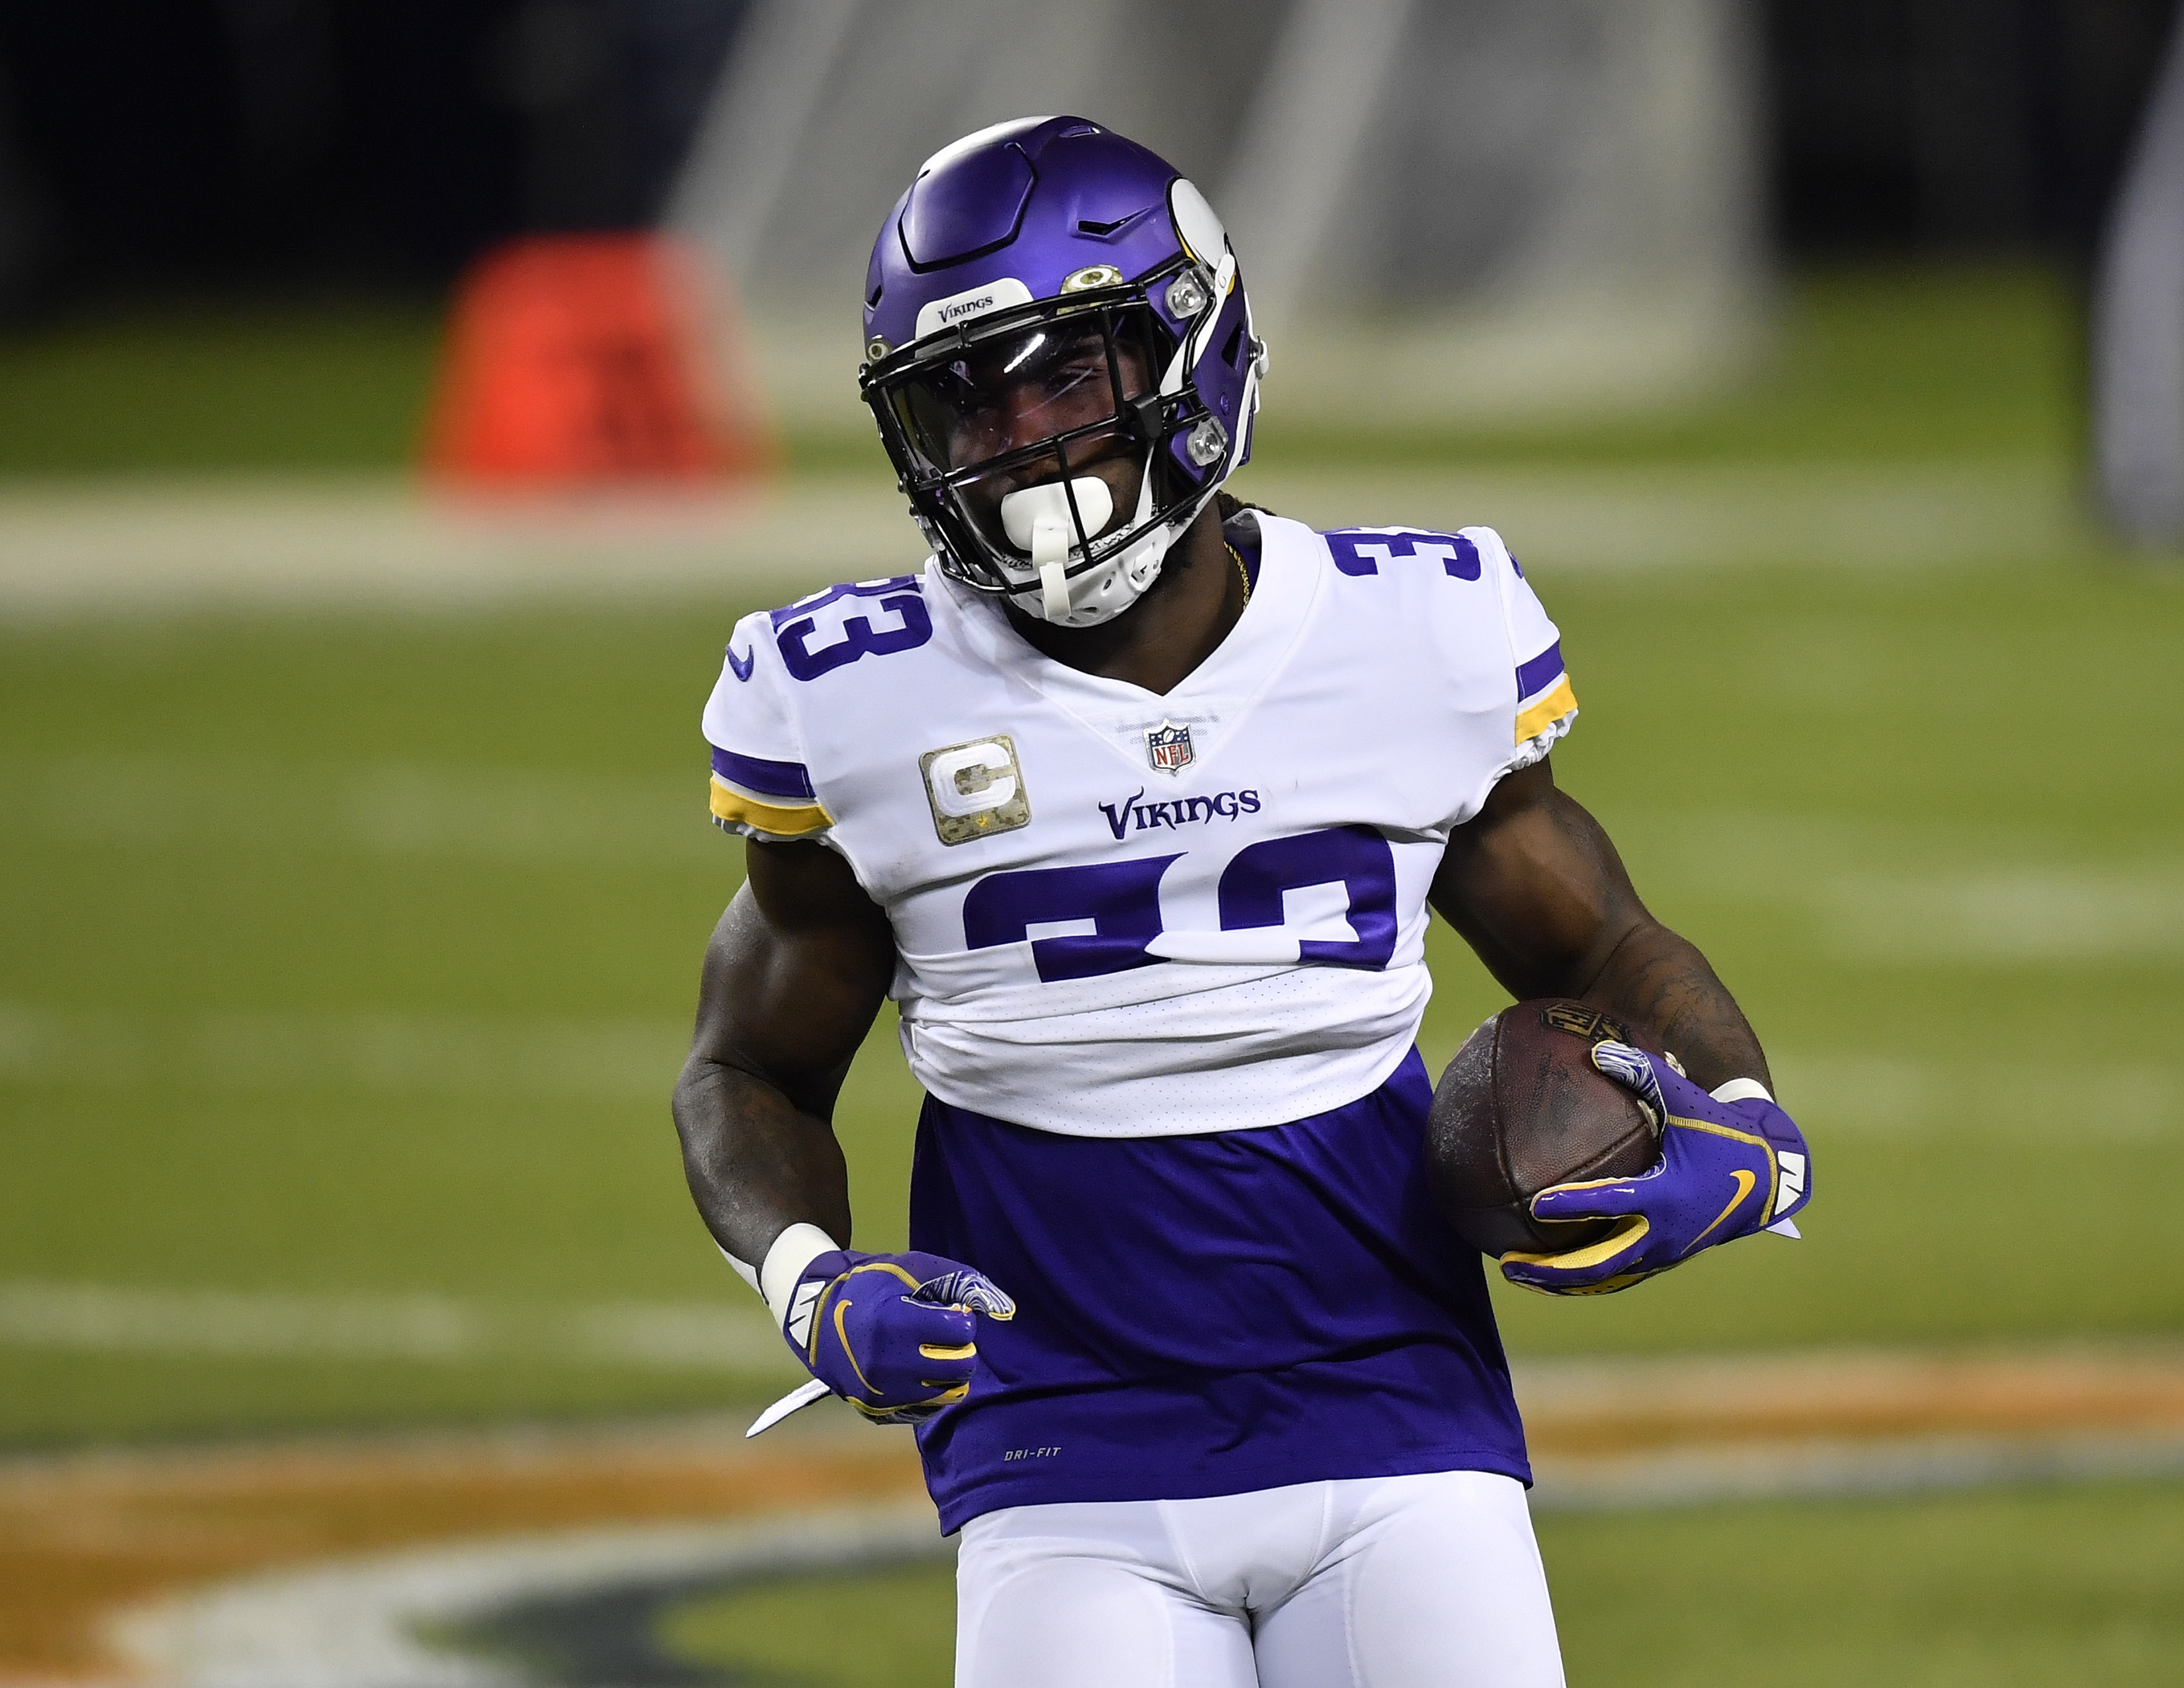 Minnesota Vikings running back Dalvin Cook (33) during warms ups before the game against the Chicago Bears at Soldier Field.